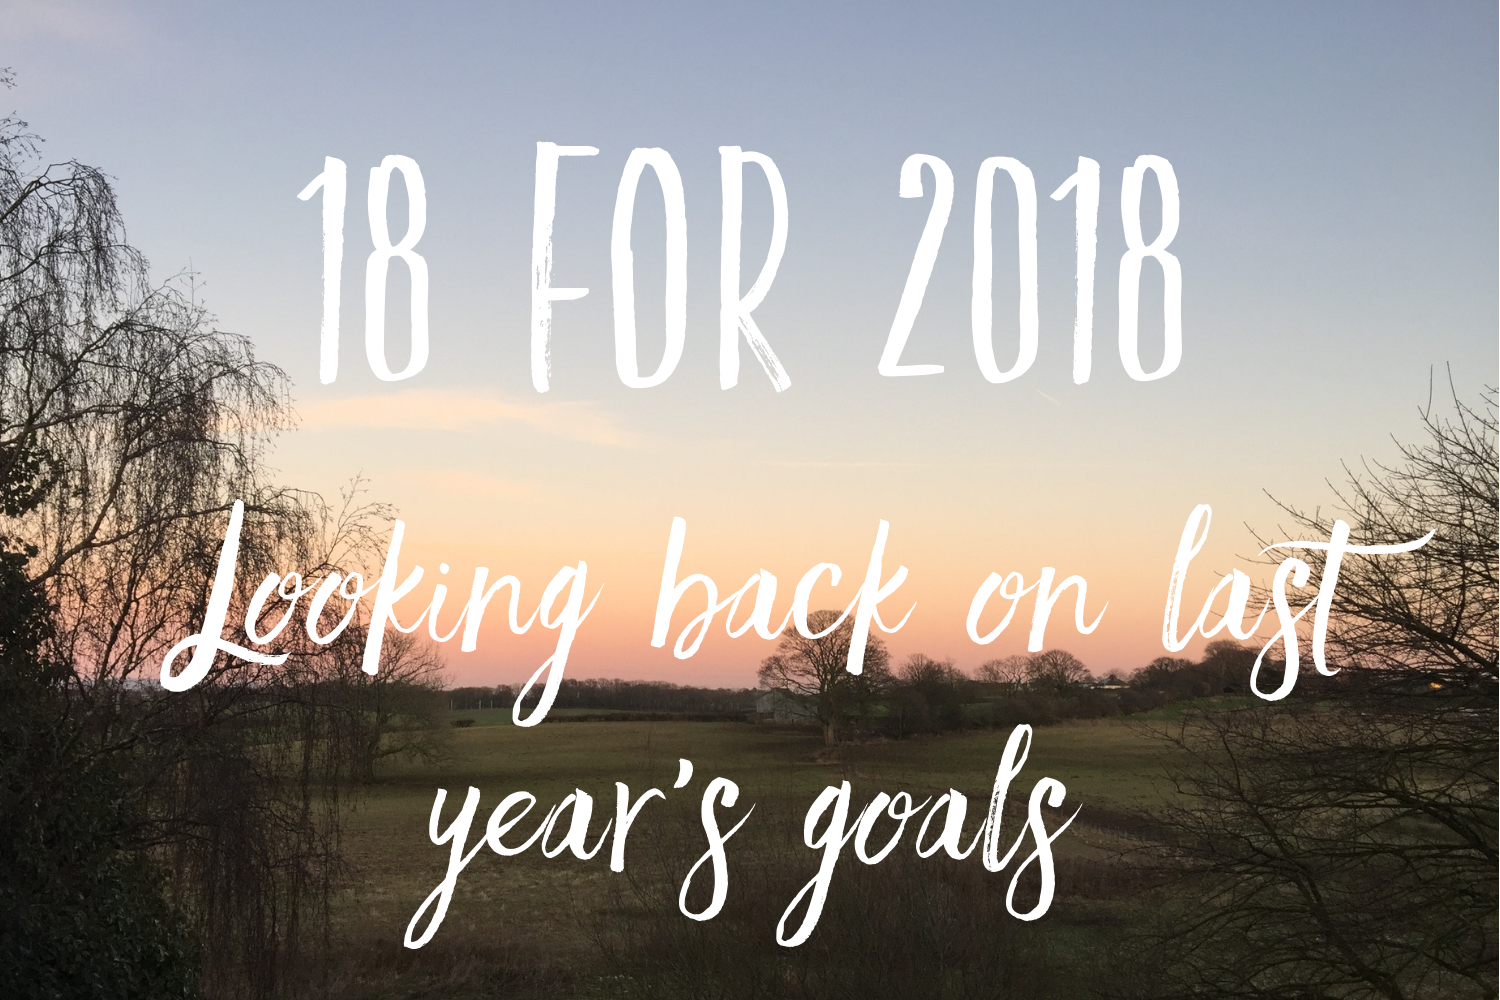 18 for 2018 - Looking back on last year's goals